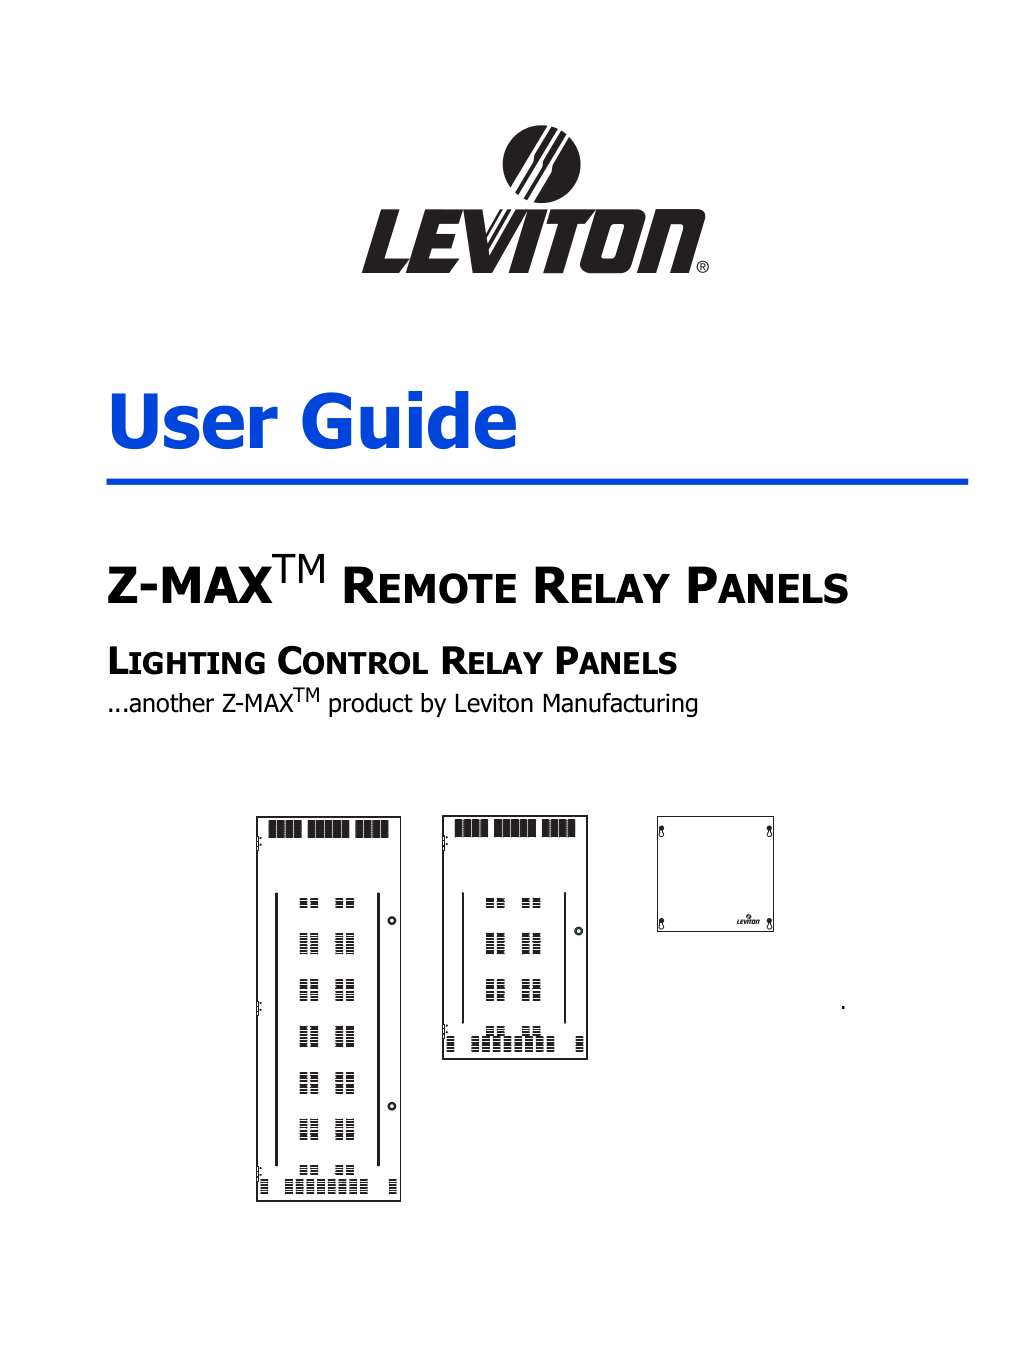 Download free pdf for Leviton Z-MAX R48SD Relay Panels